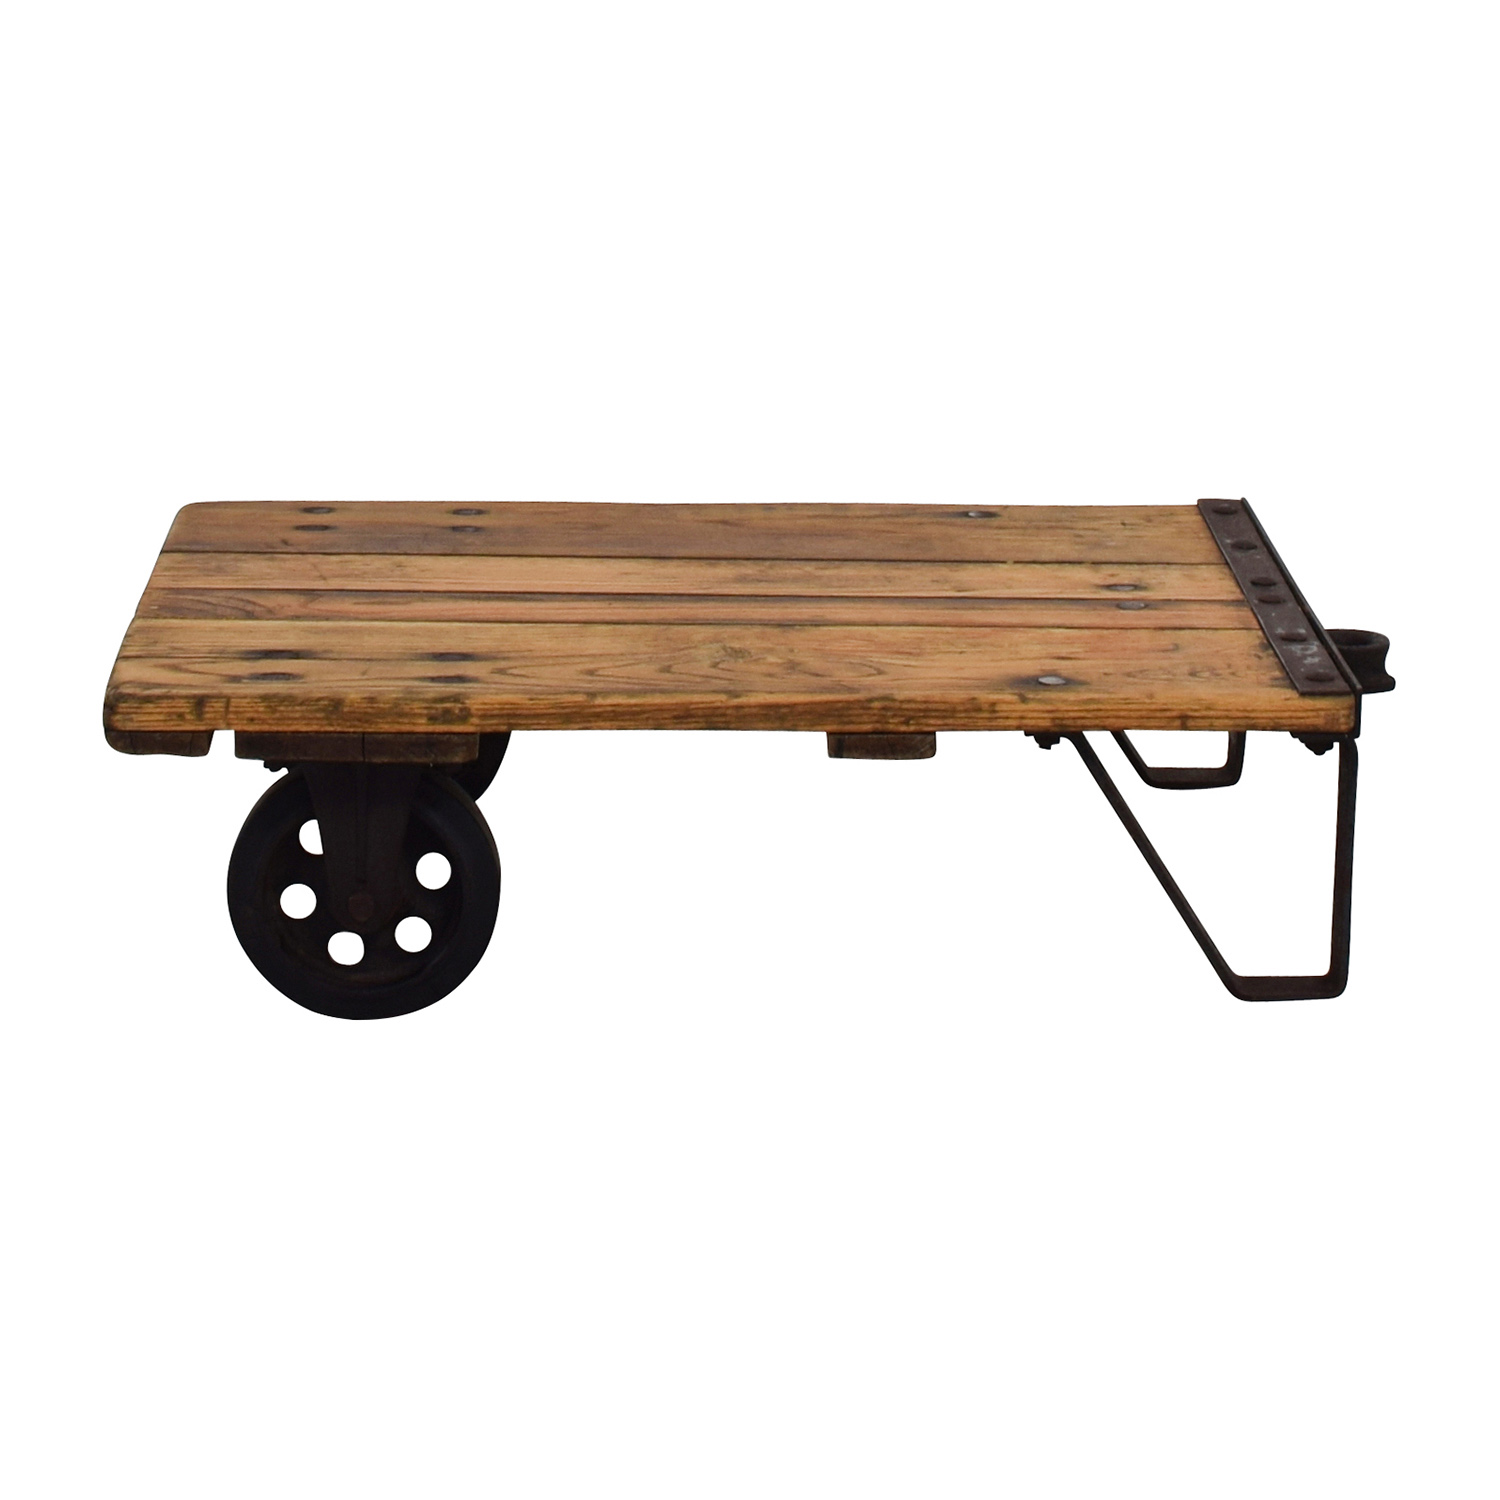 Thomas Truck & Caster Co Restored Industrial Coffee Table Thomas Truck & Caster Co